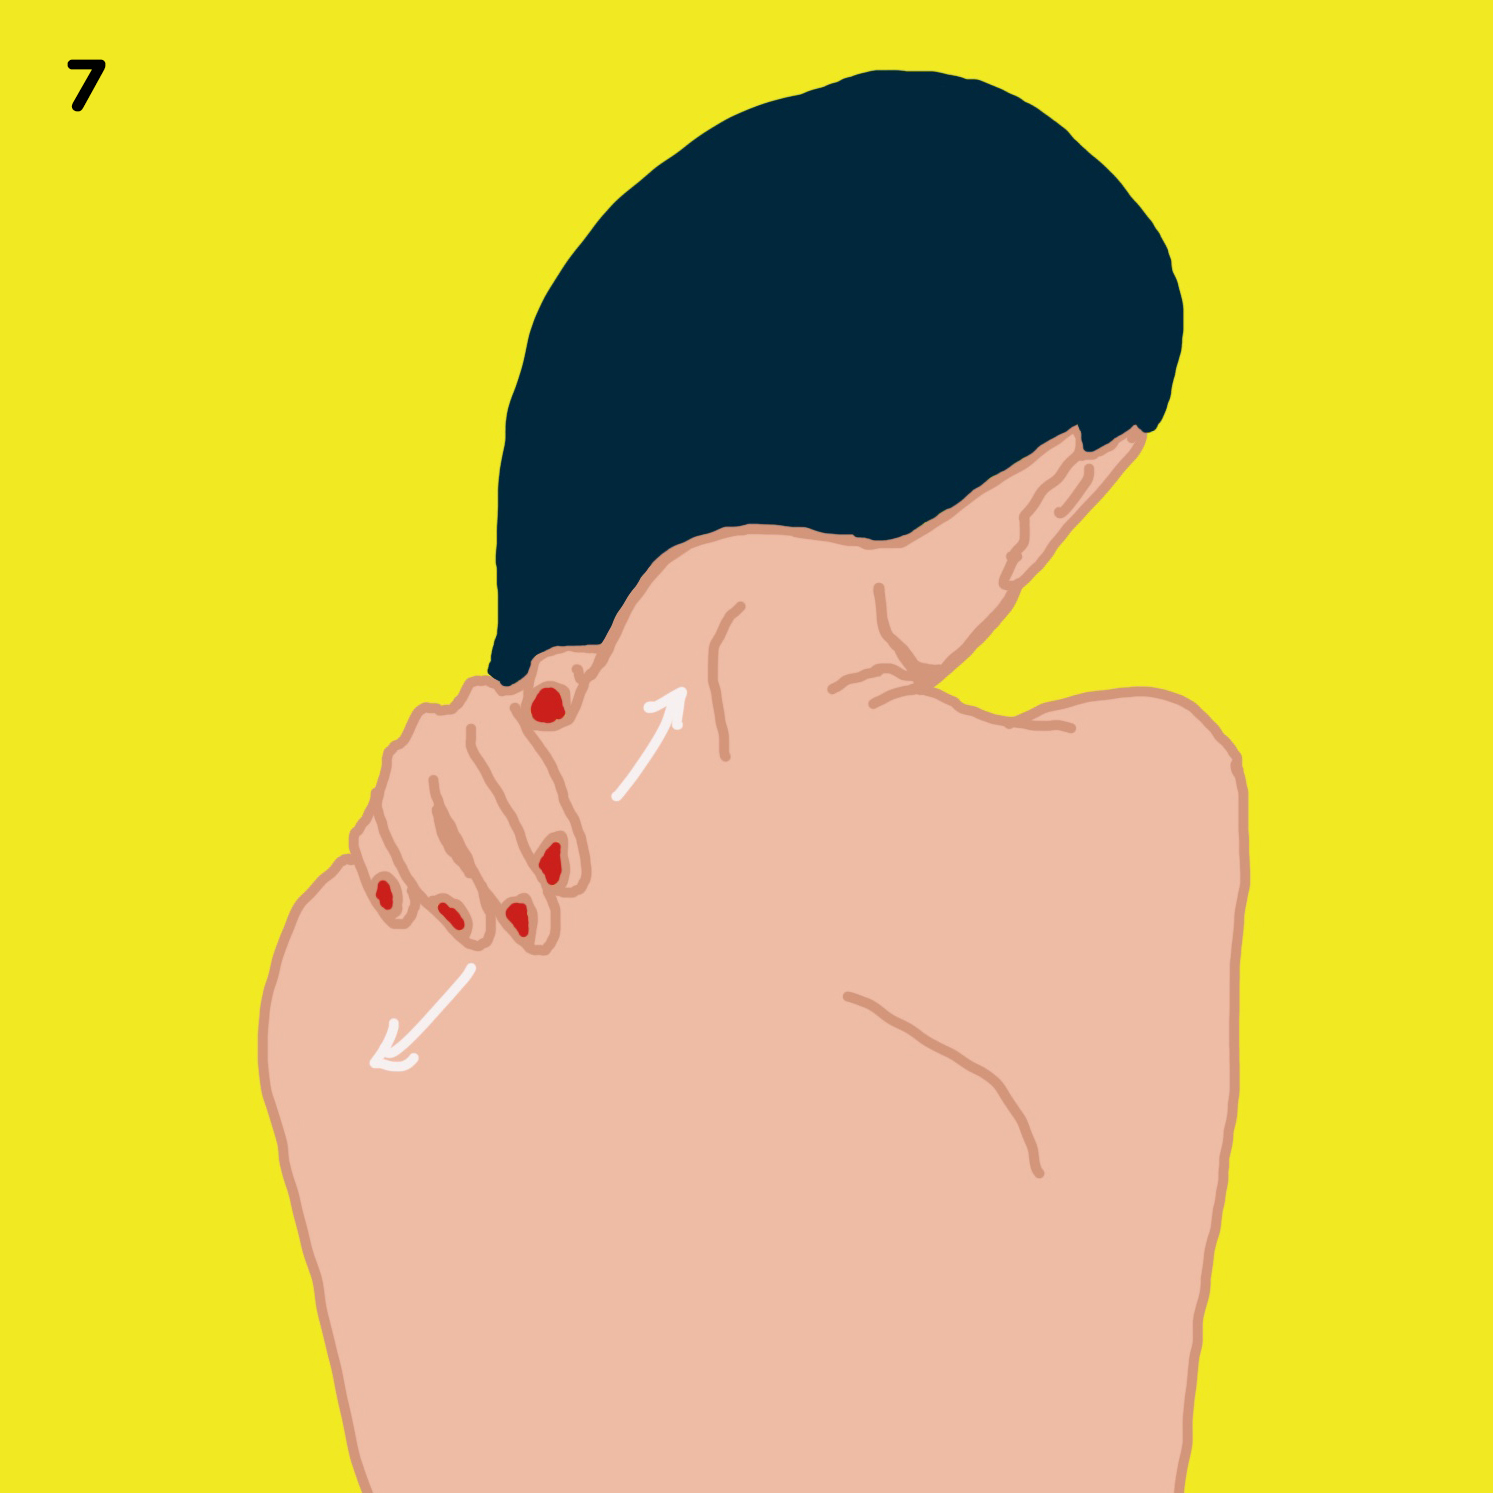 7. SHOULDERS   Now, place your right hand on your left shoulder at the base of your neck and squeeze the muscles outwards along your shoulder, applying as much pressure as it feels good. Repeat on the second side.